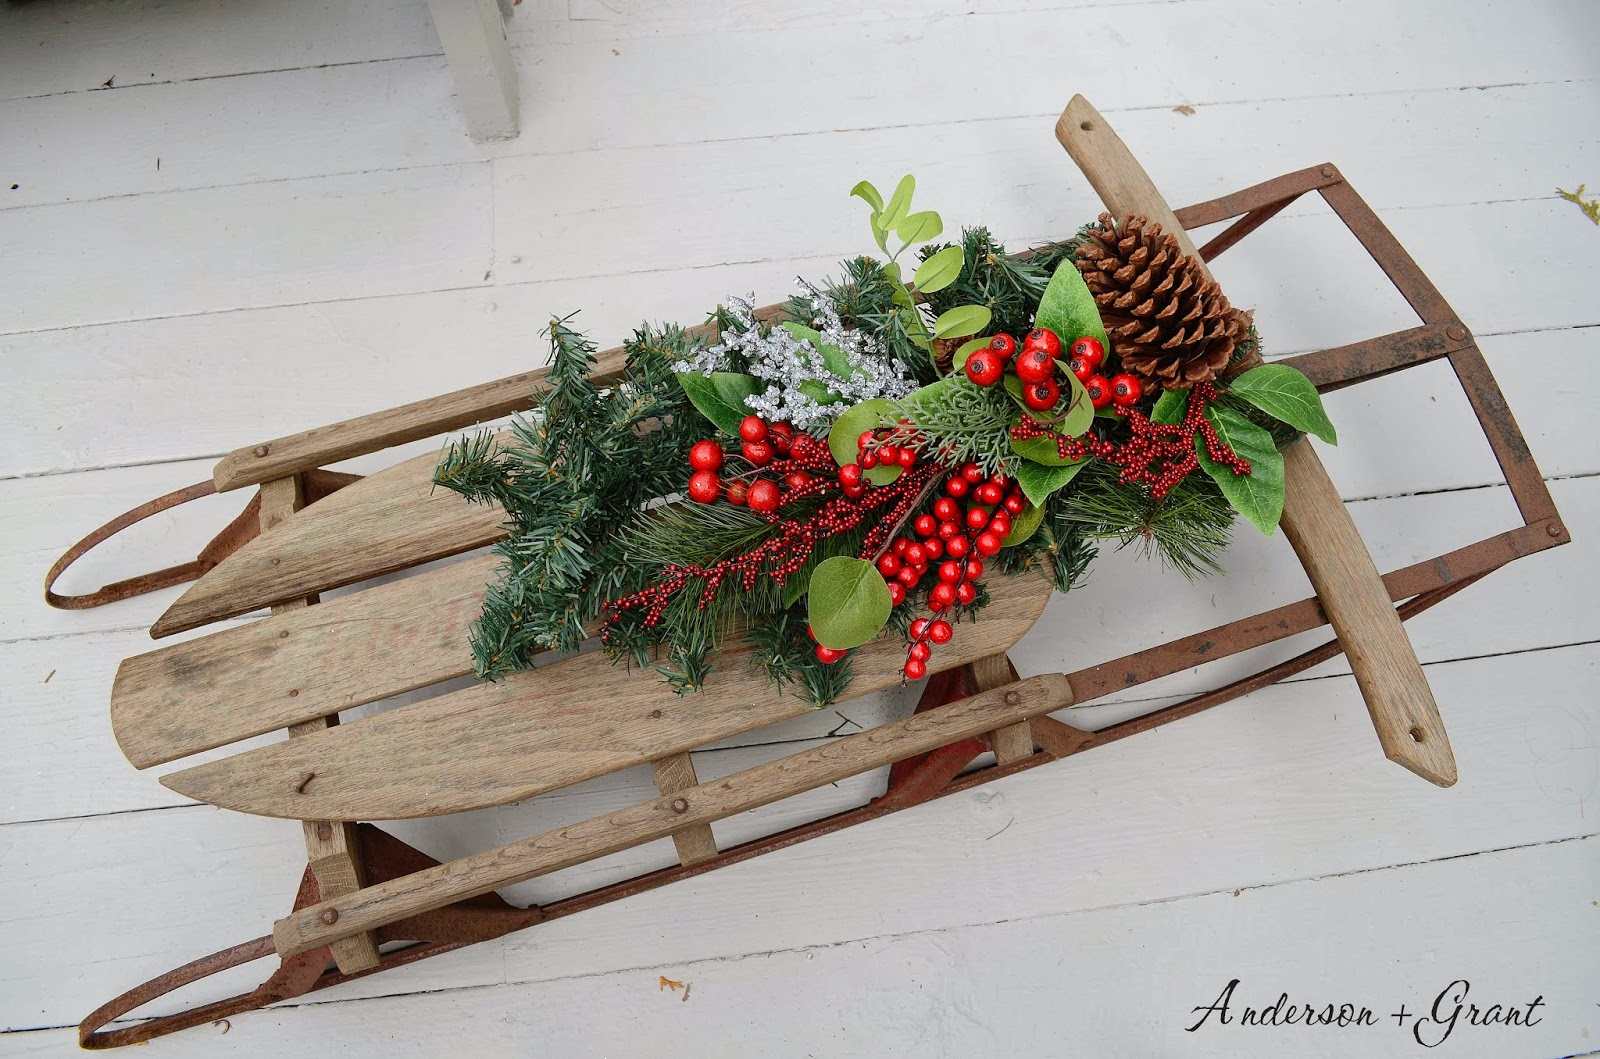 Decorating a vintage sled for christmas anderson grant solutioingenieria Choice Image